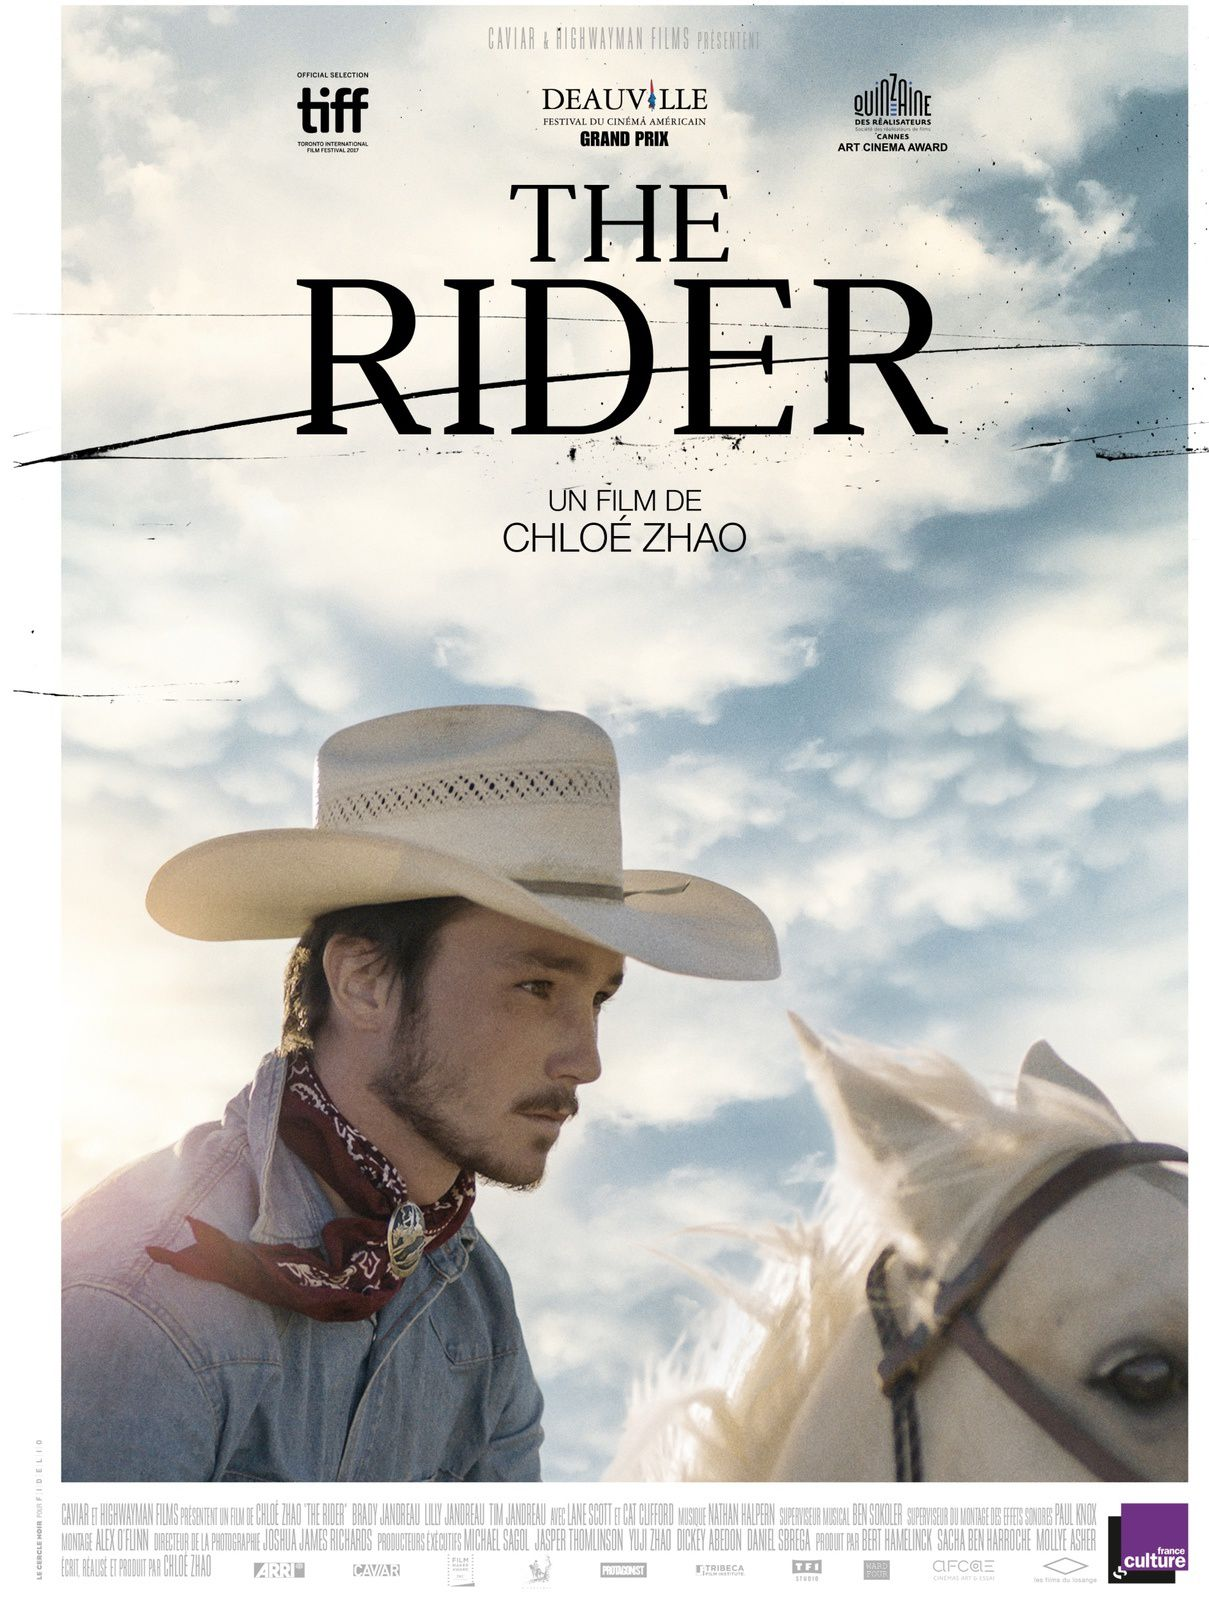 Bande-annonce du film The Rider.